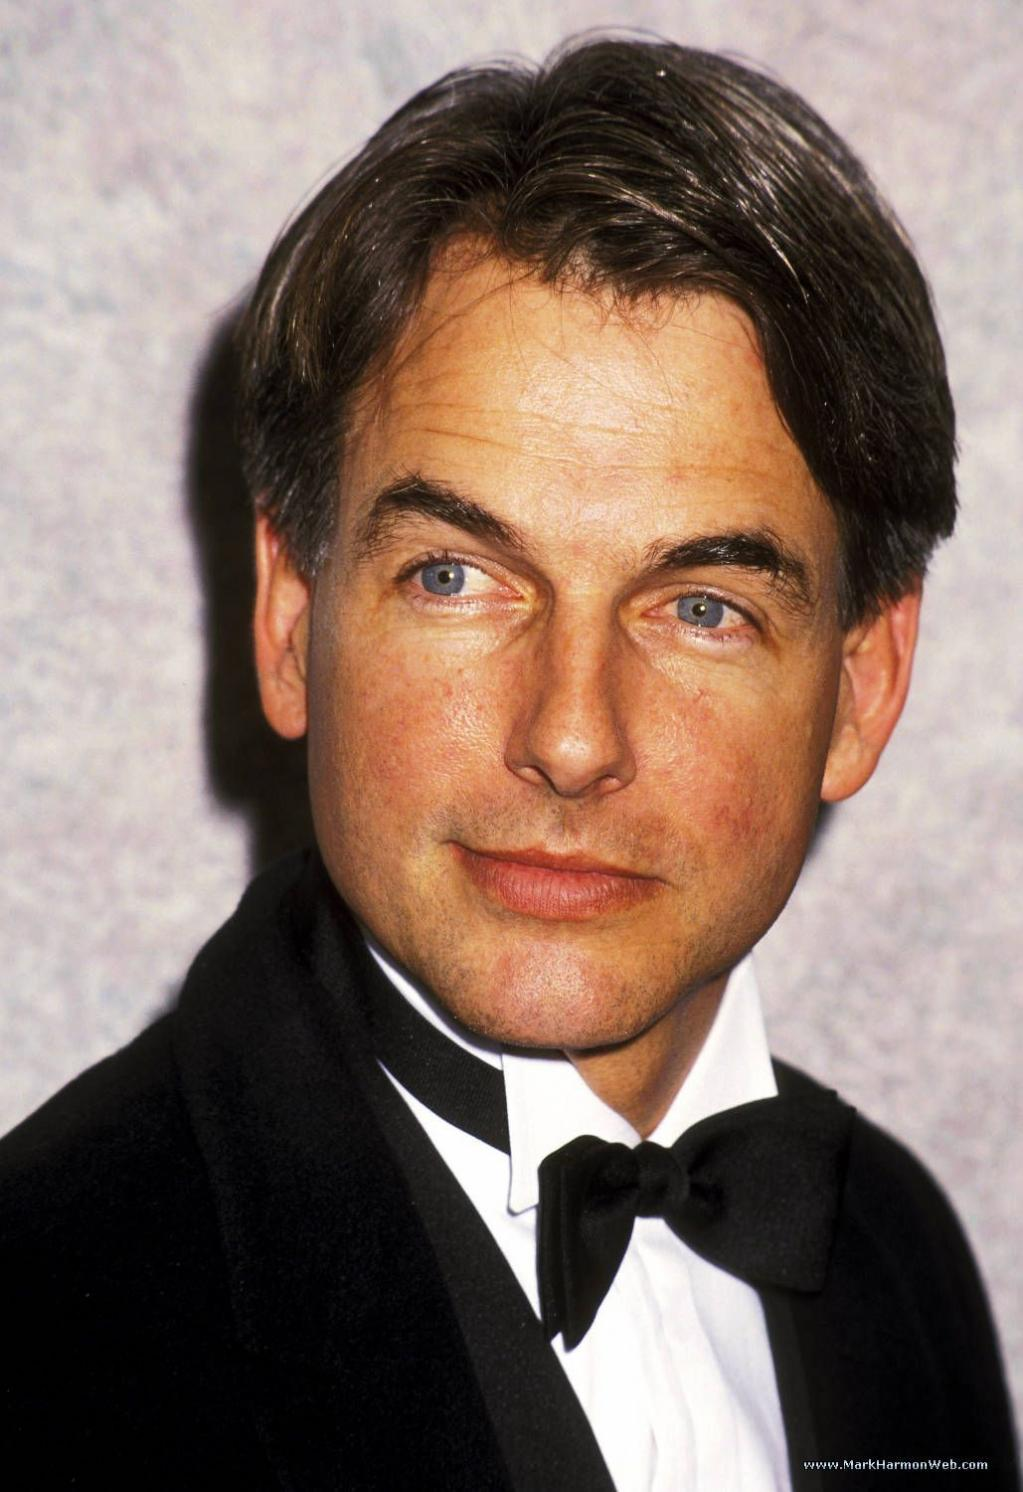 Mark Harmon On Pinterest   Mark Harmon, Ncis And Leroy Jethro Gibbs